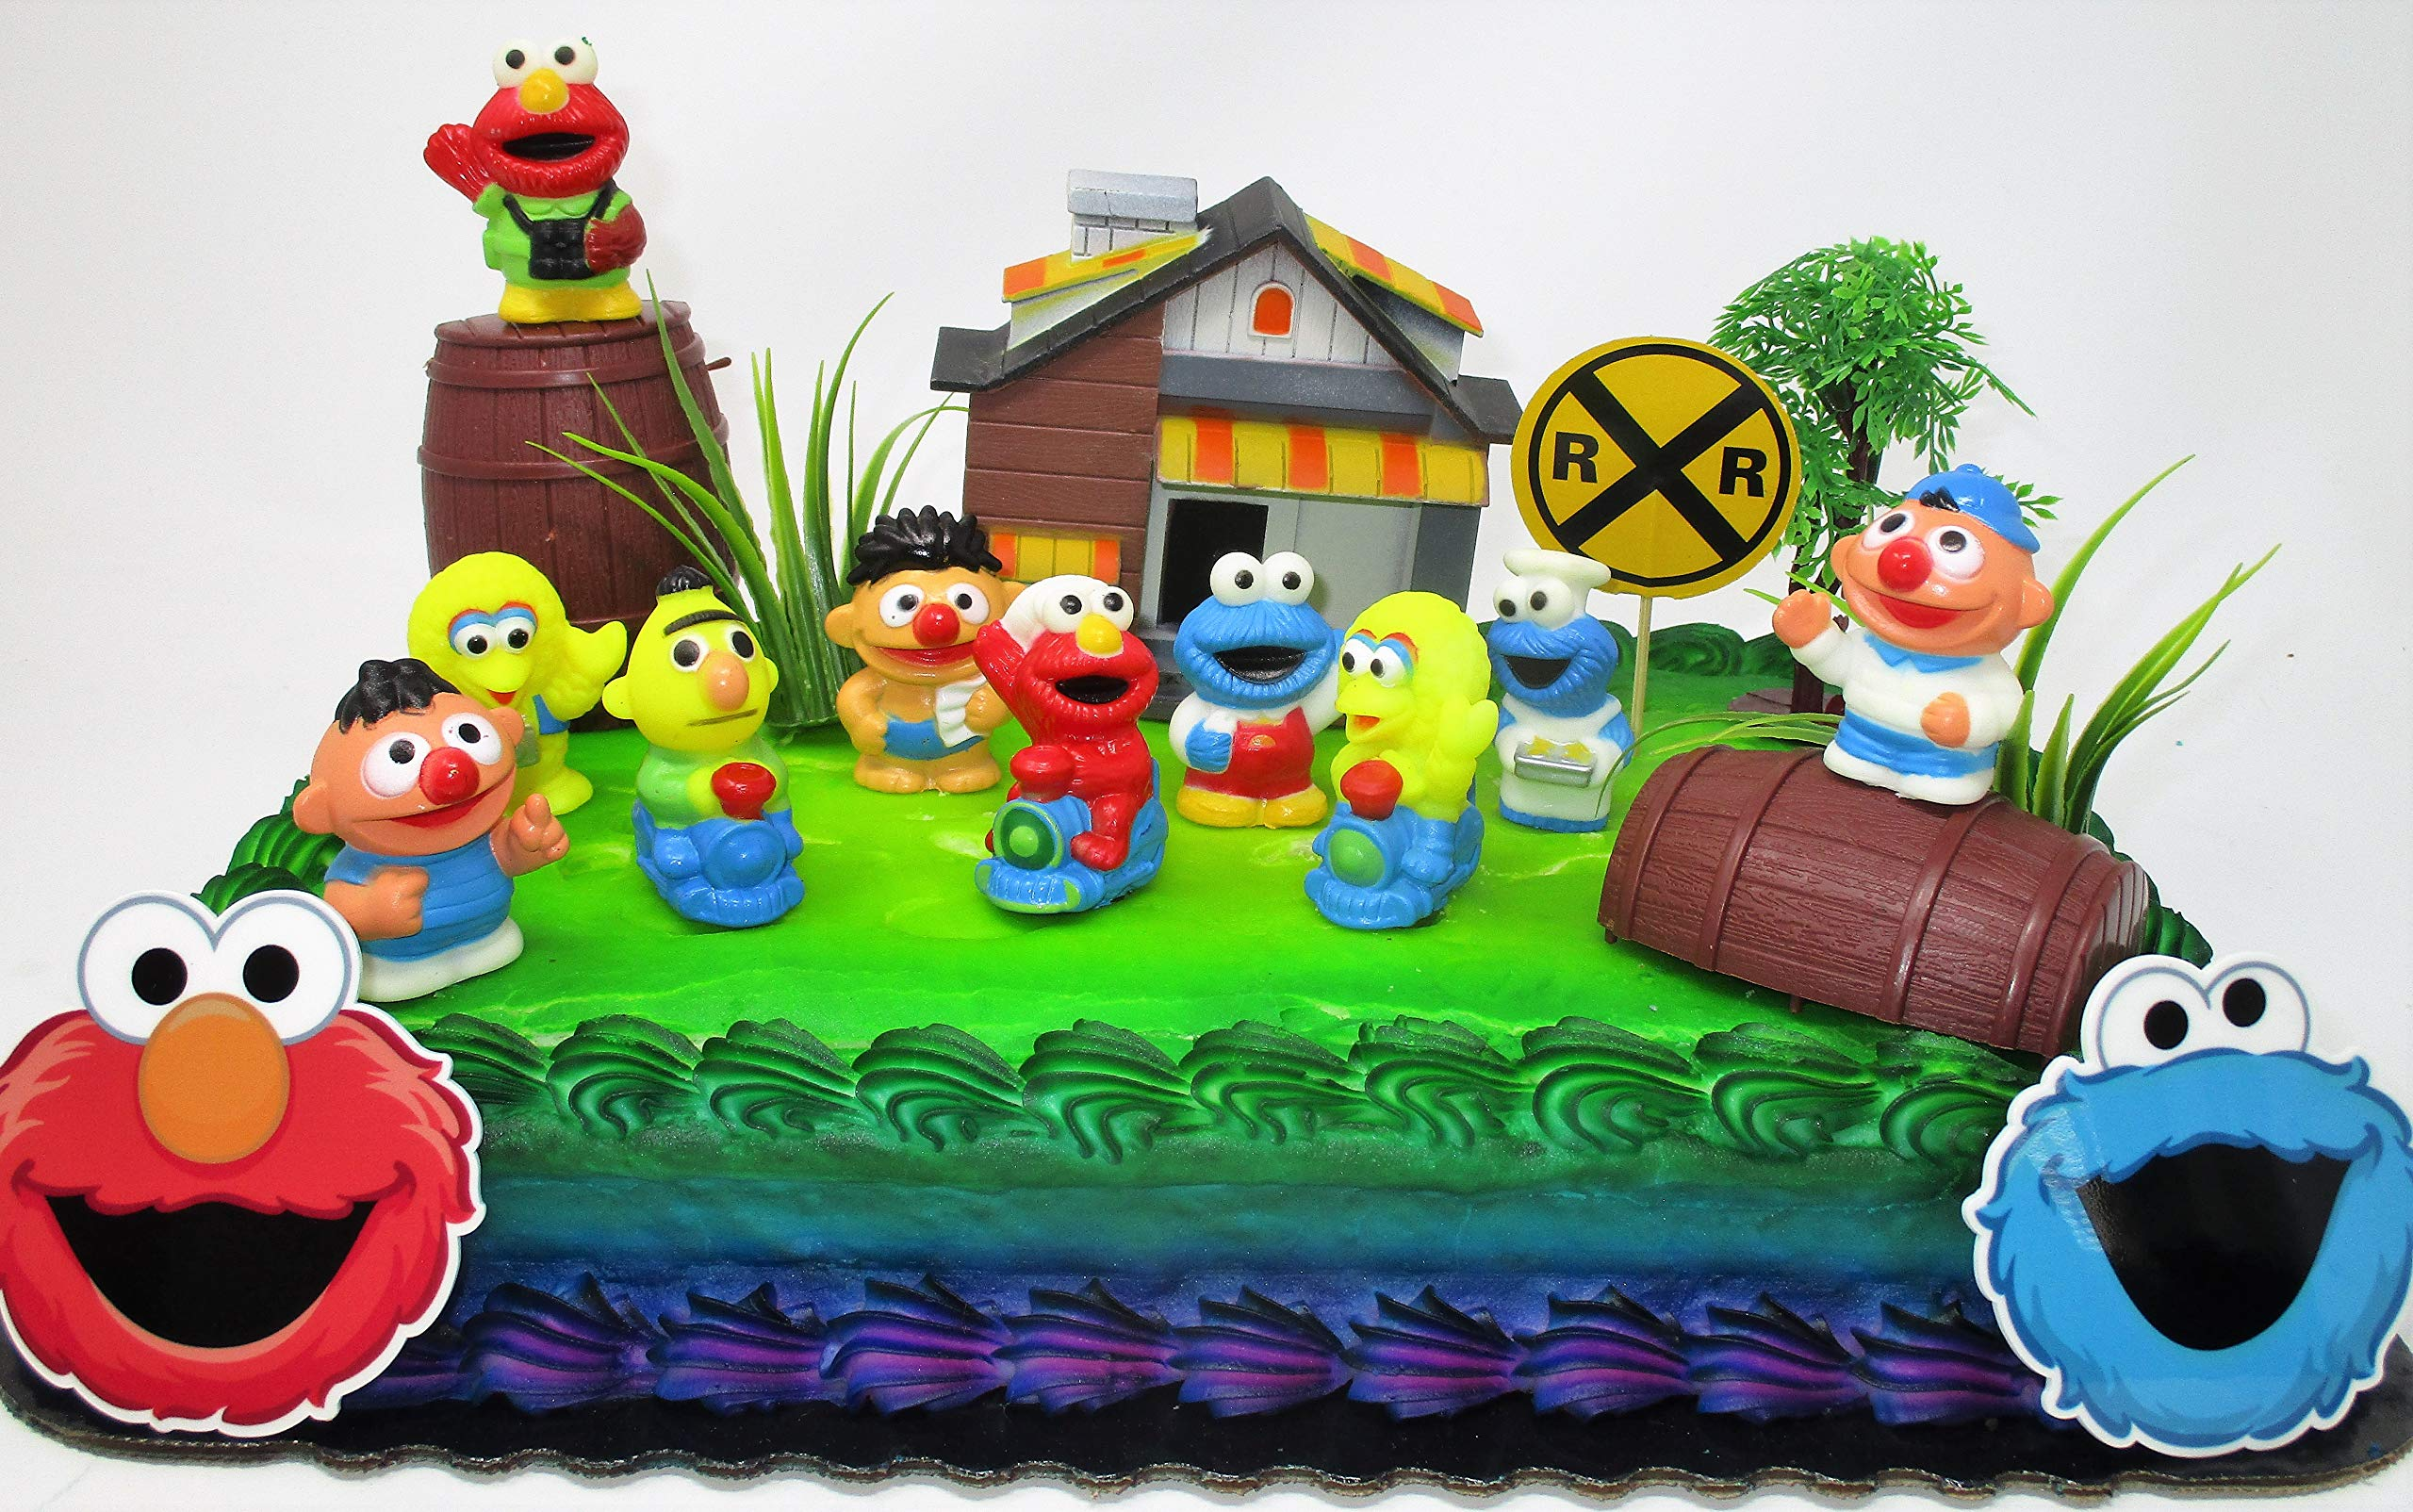 Kids Classic Cake Topper Set Featuring Big Bird, Elmo, Cookie Monster and Friends by Cake Topper